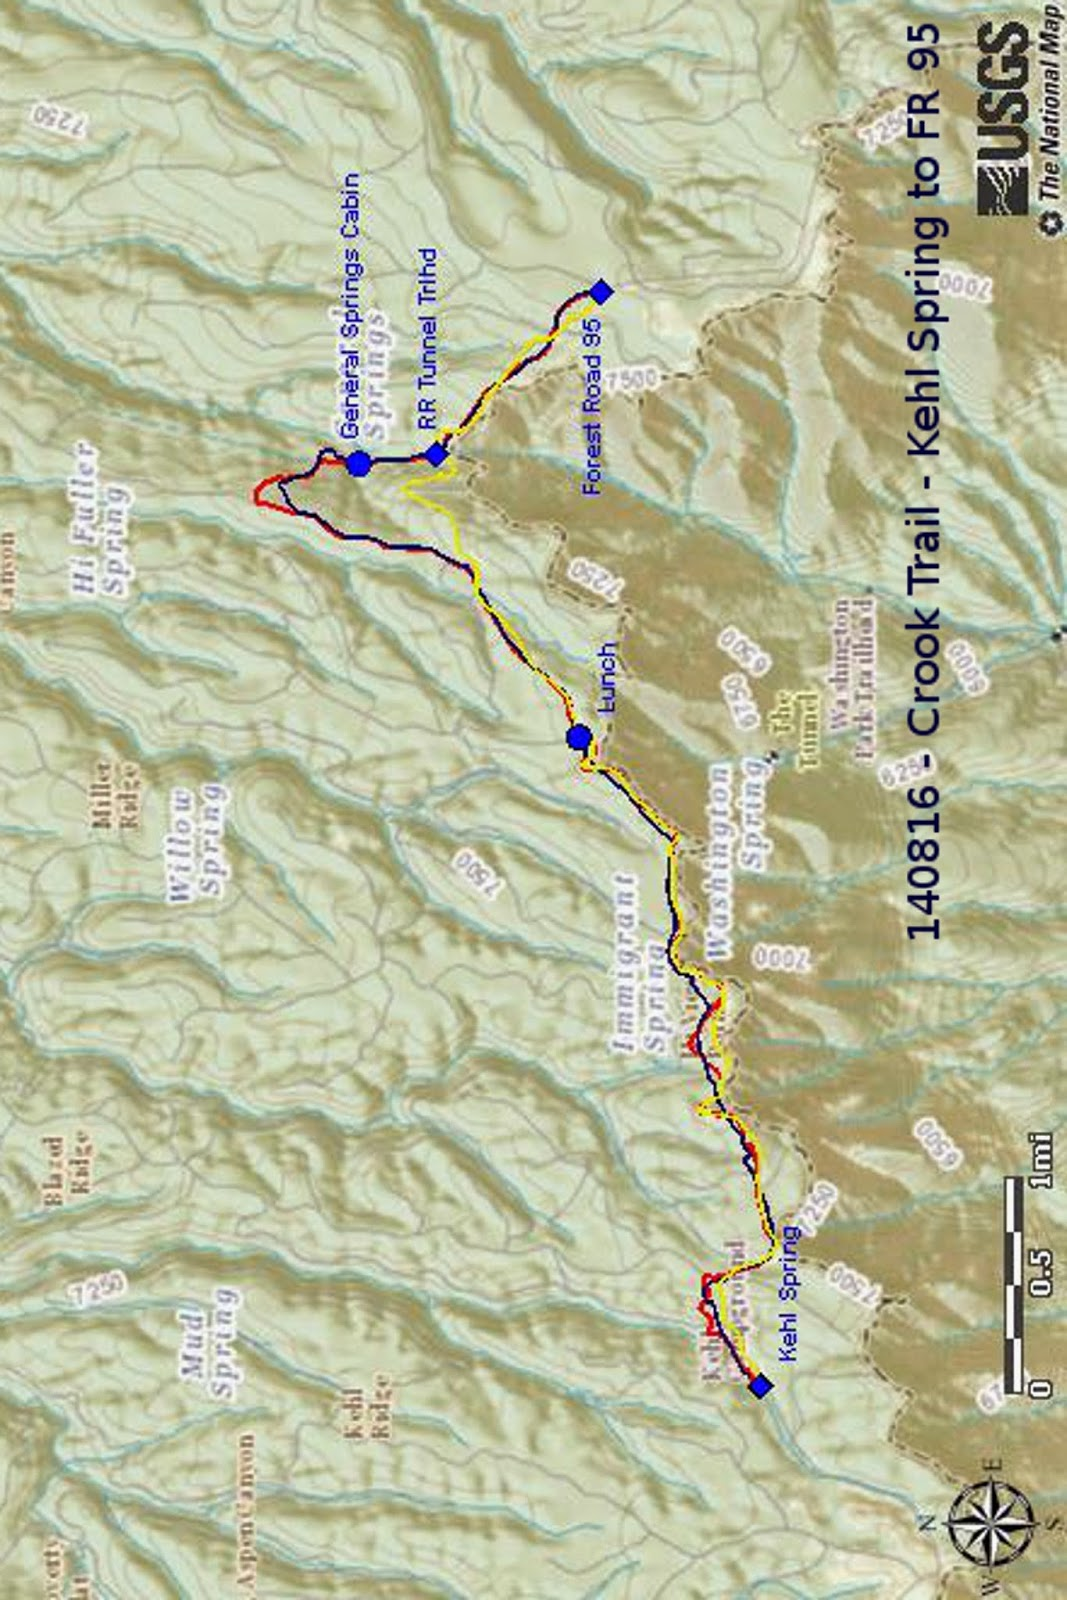 our gps track is shown in red on the included map next page the gps track i downloaded to use as a guide is shown in dark blue and rim road is shown in